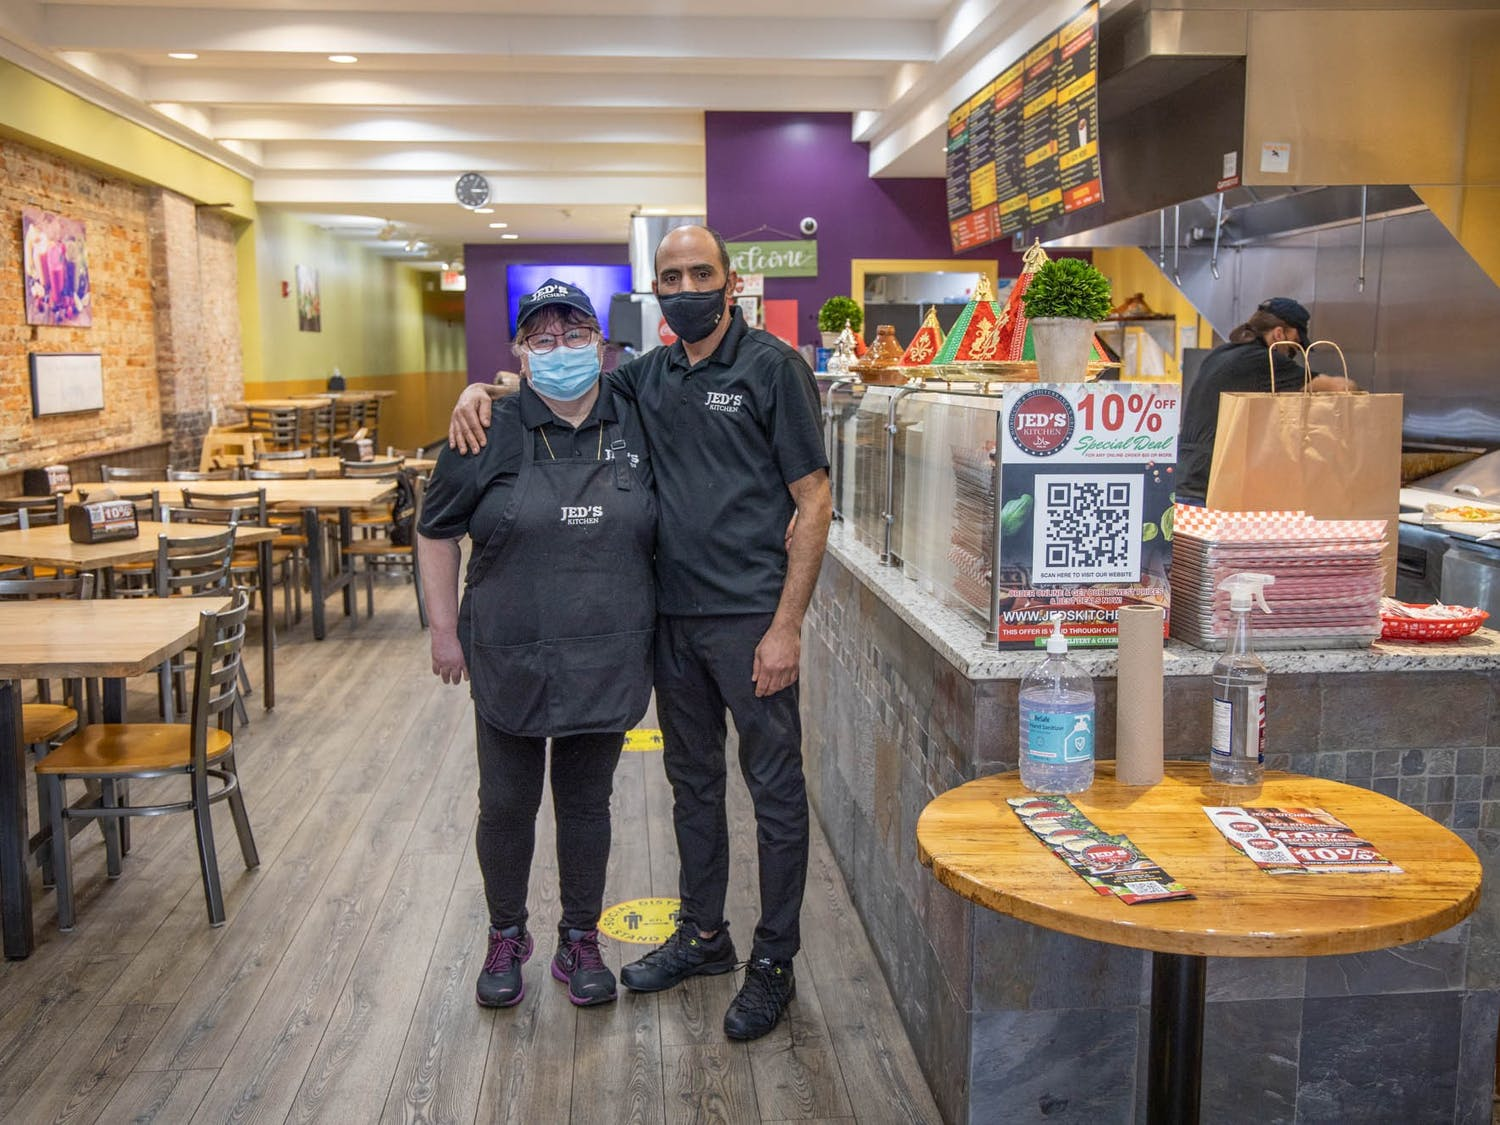 Larbi Jeddour and Cathy Starks, co-owners of Jed's Kitchen, pose for a portrait in his restaurant on Wednesday, March 3, 2021. Jeddour, who is originally from Morocco, opened the Moroccan and Mediterranean grill in December 2020.